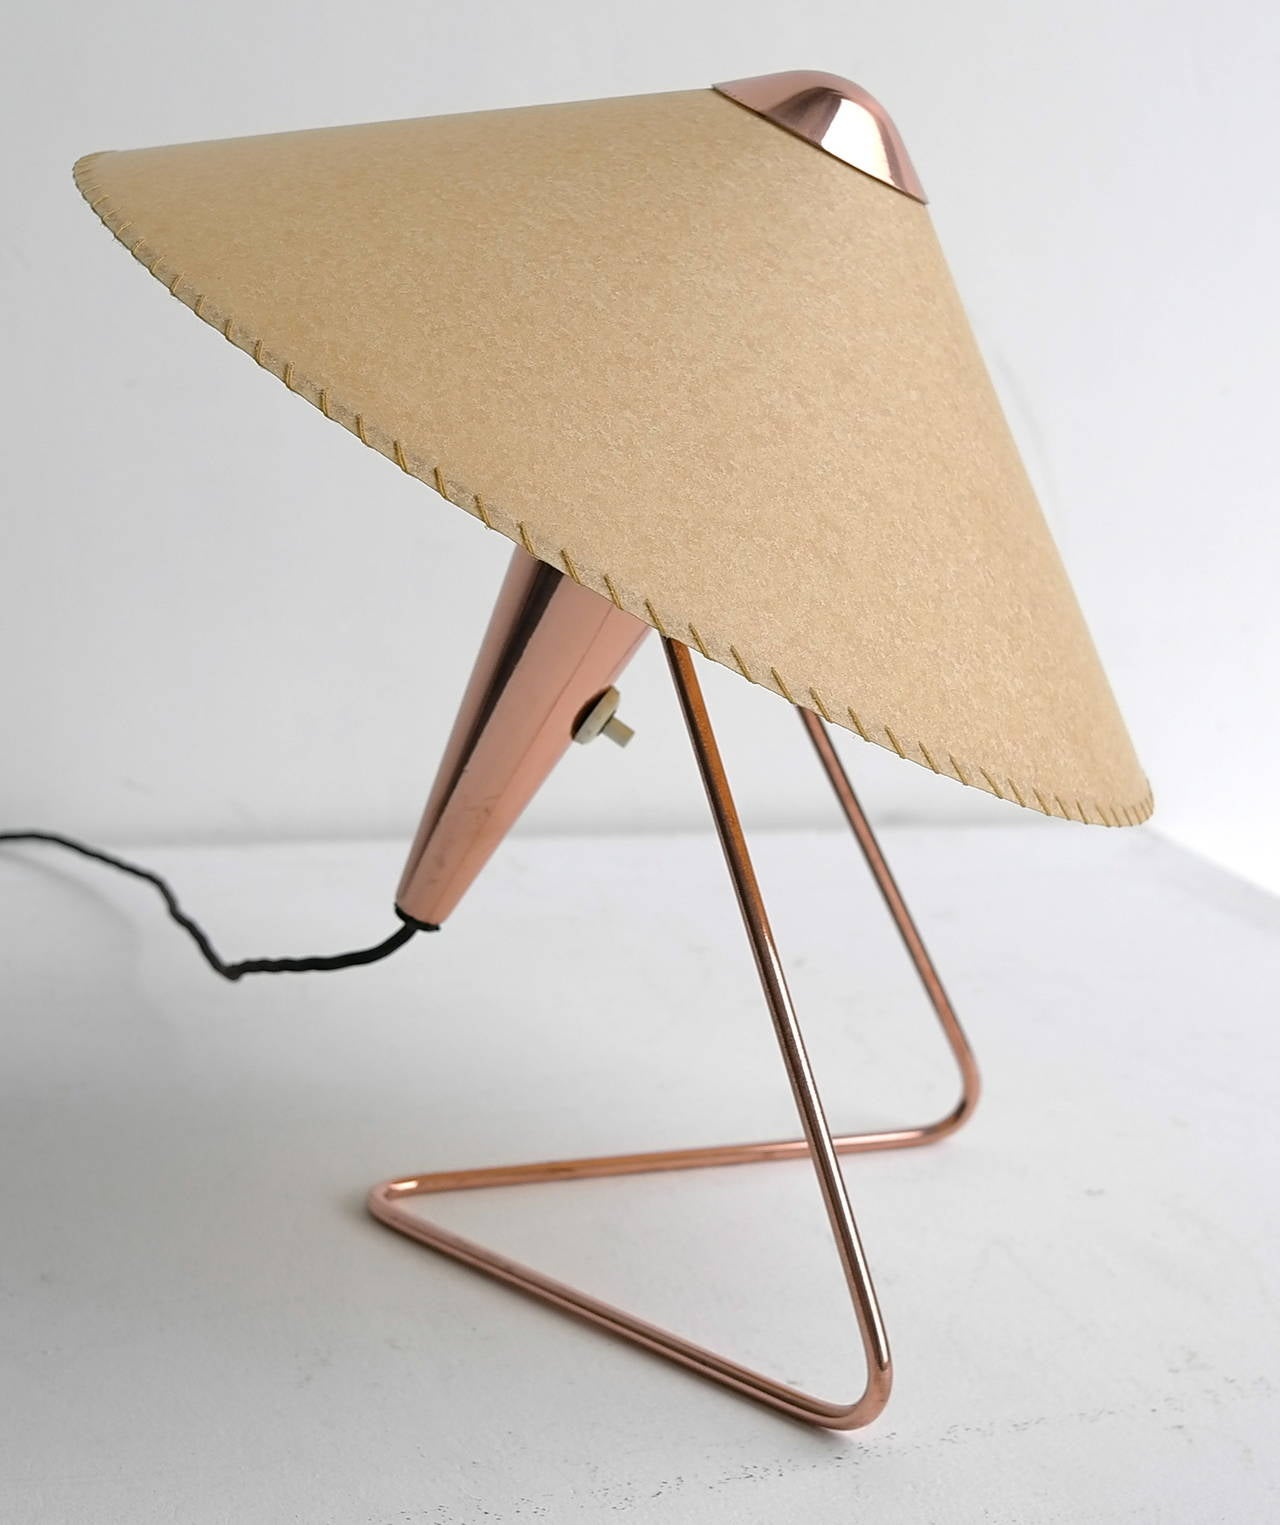 V-shaped copper table lamp, 1950s.